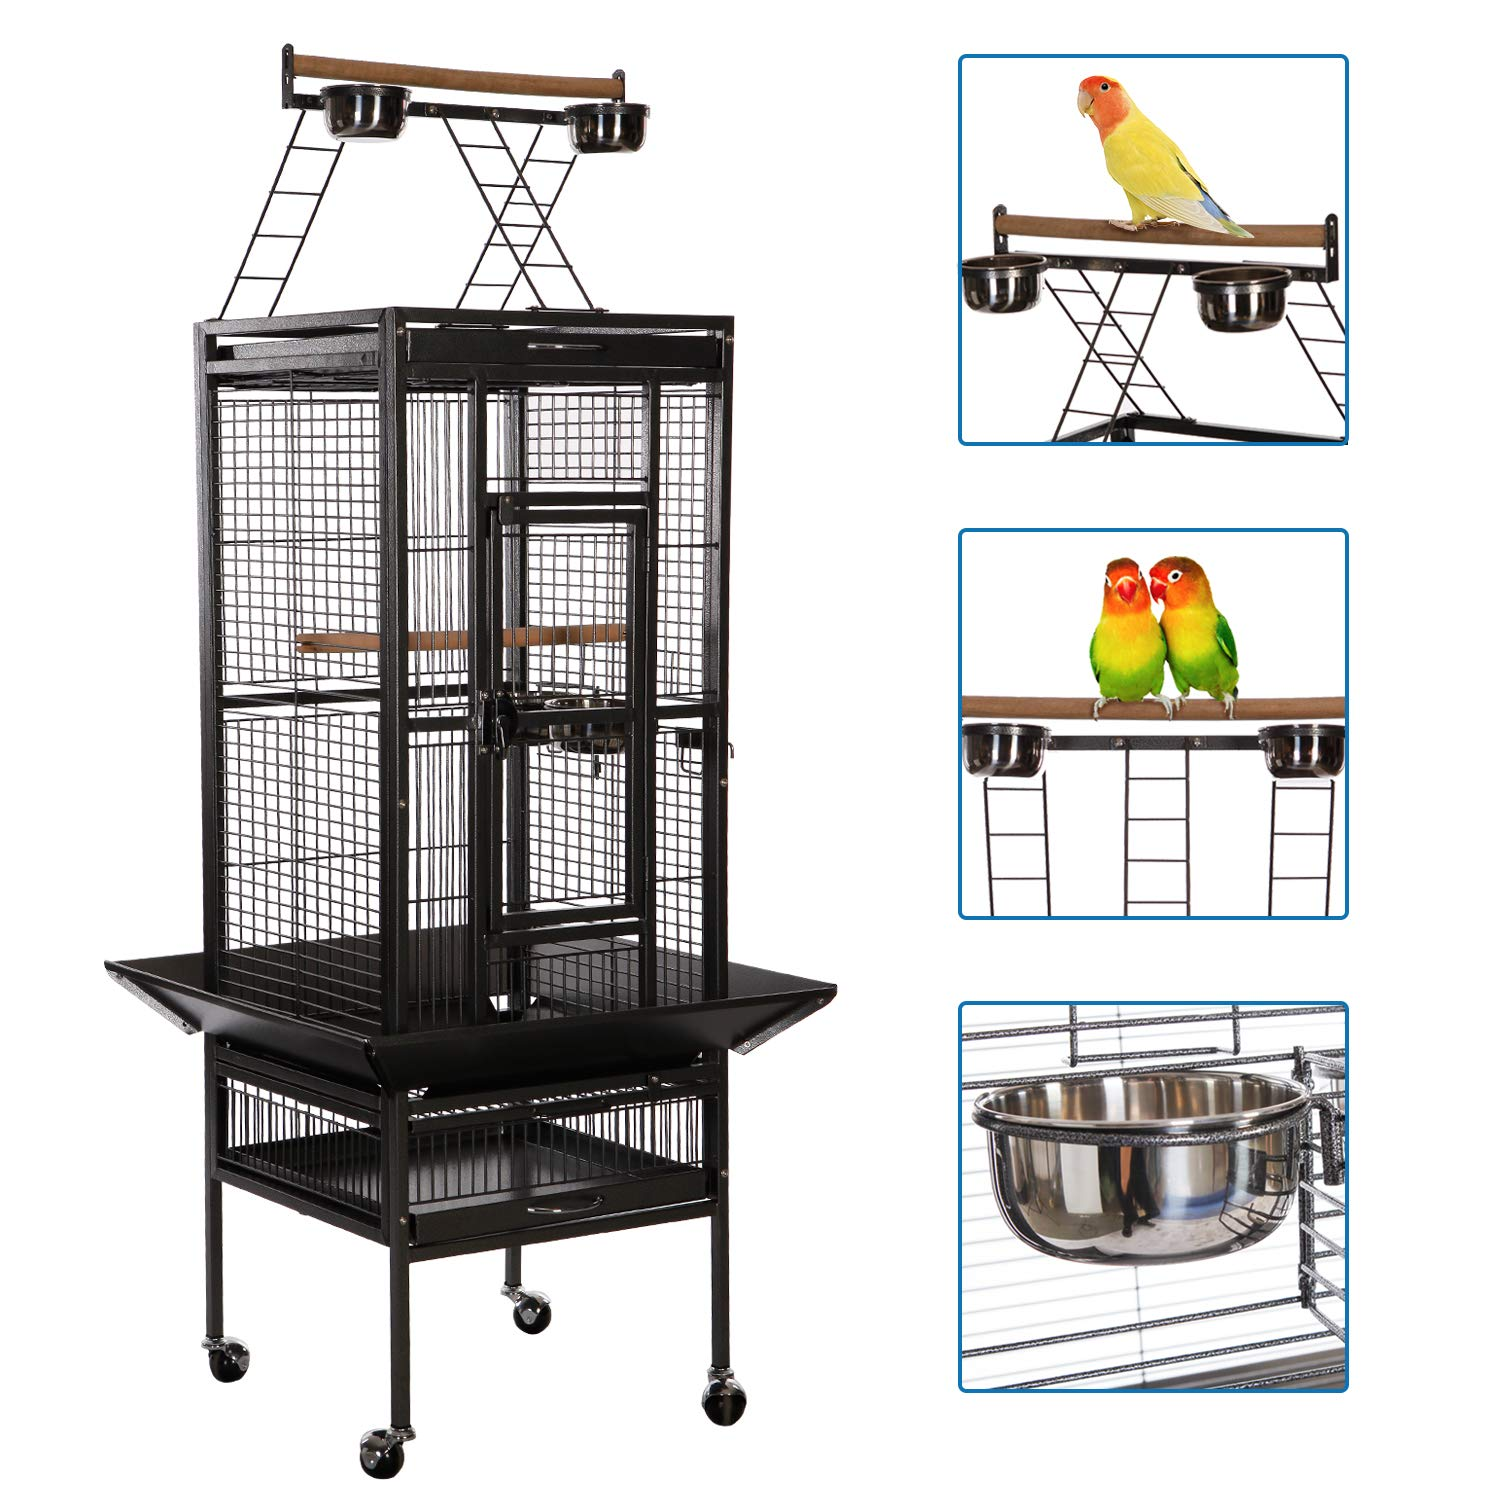 397770bc1603 VECELA Bird cage Wrought Iron Flight cage Parrot cage 53/61/68inch Large  Bird cage Rolling Trolley Metal Wheels - Wetland Tools